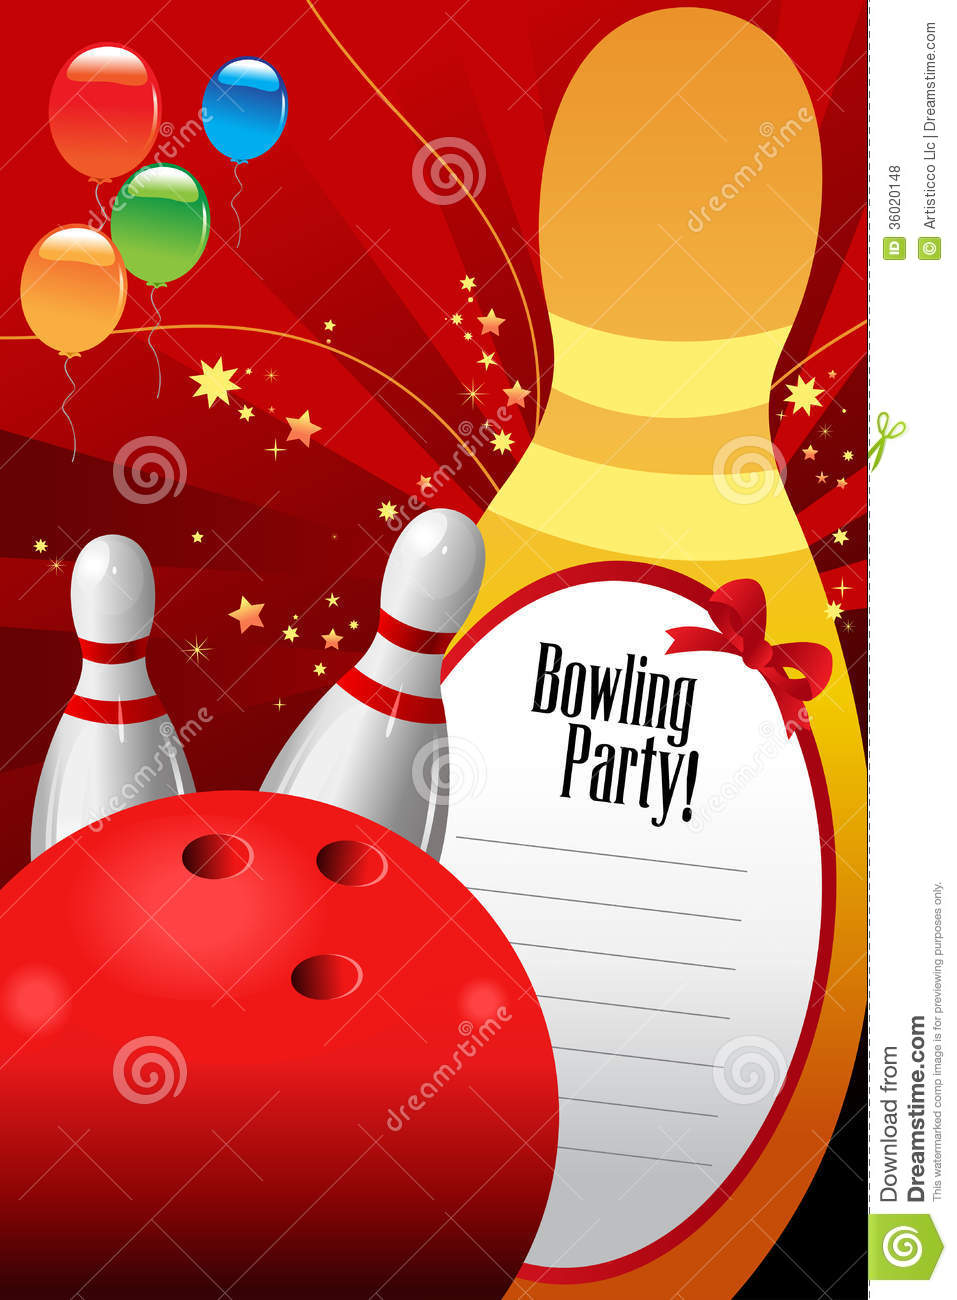 Bowling Party Invitation Template Royalty Free Stock